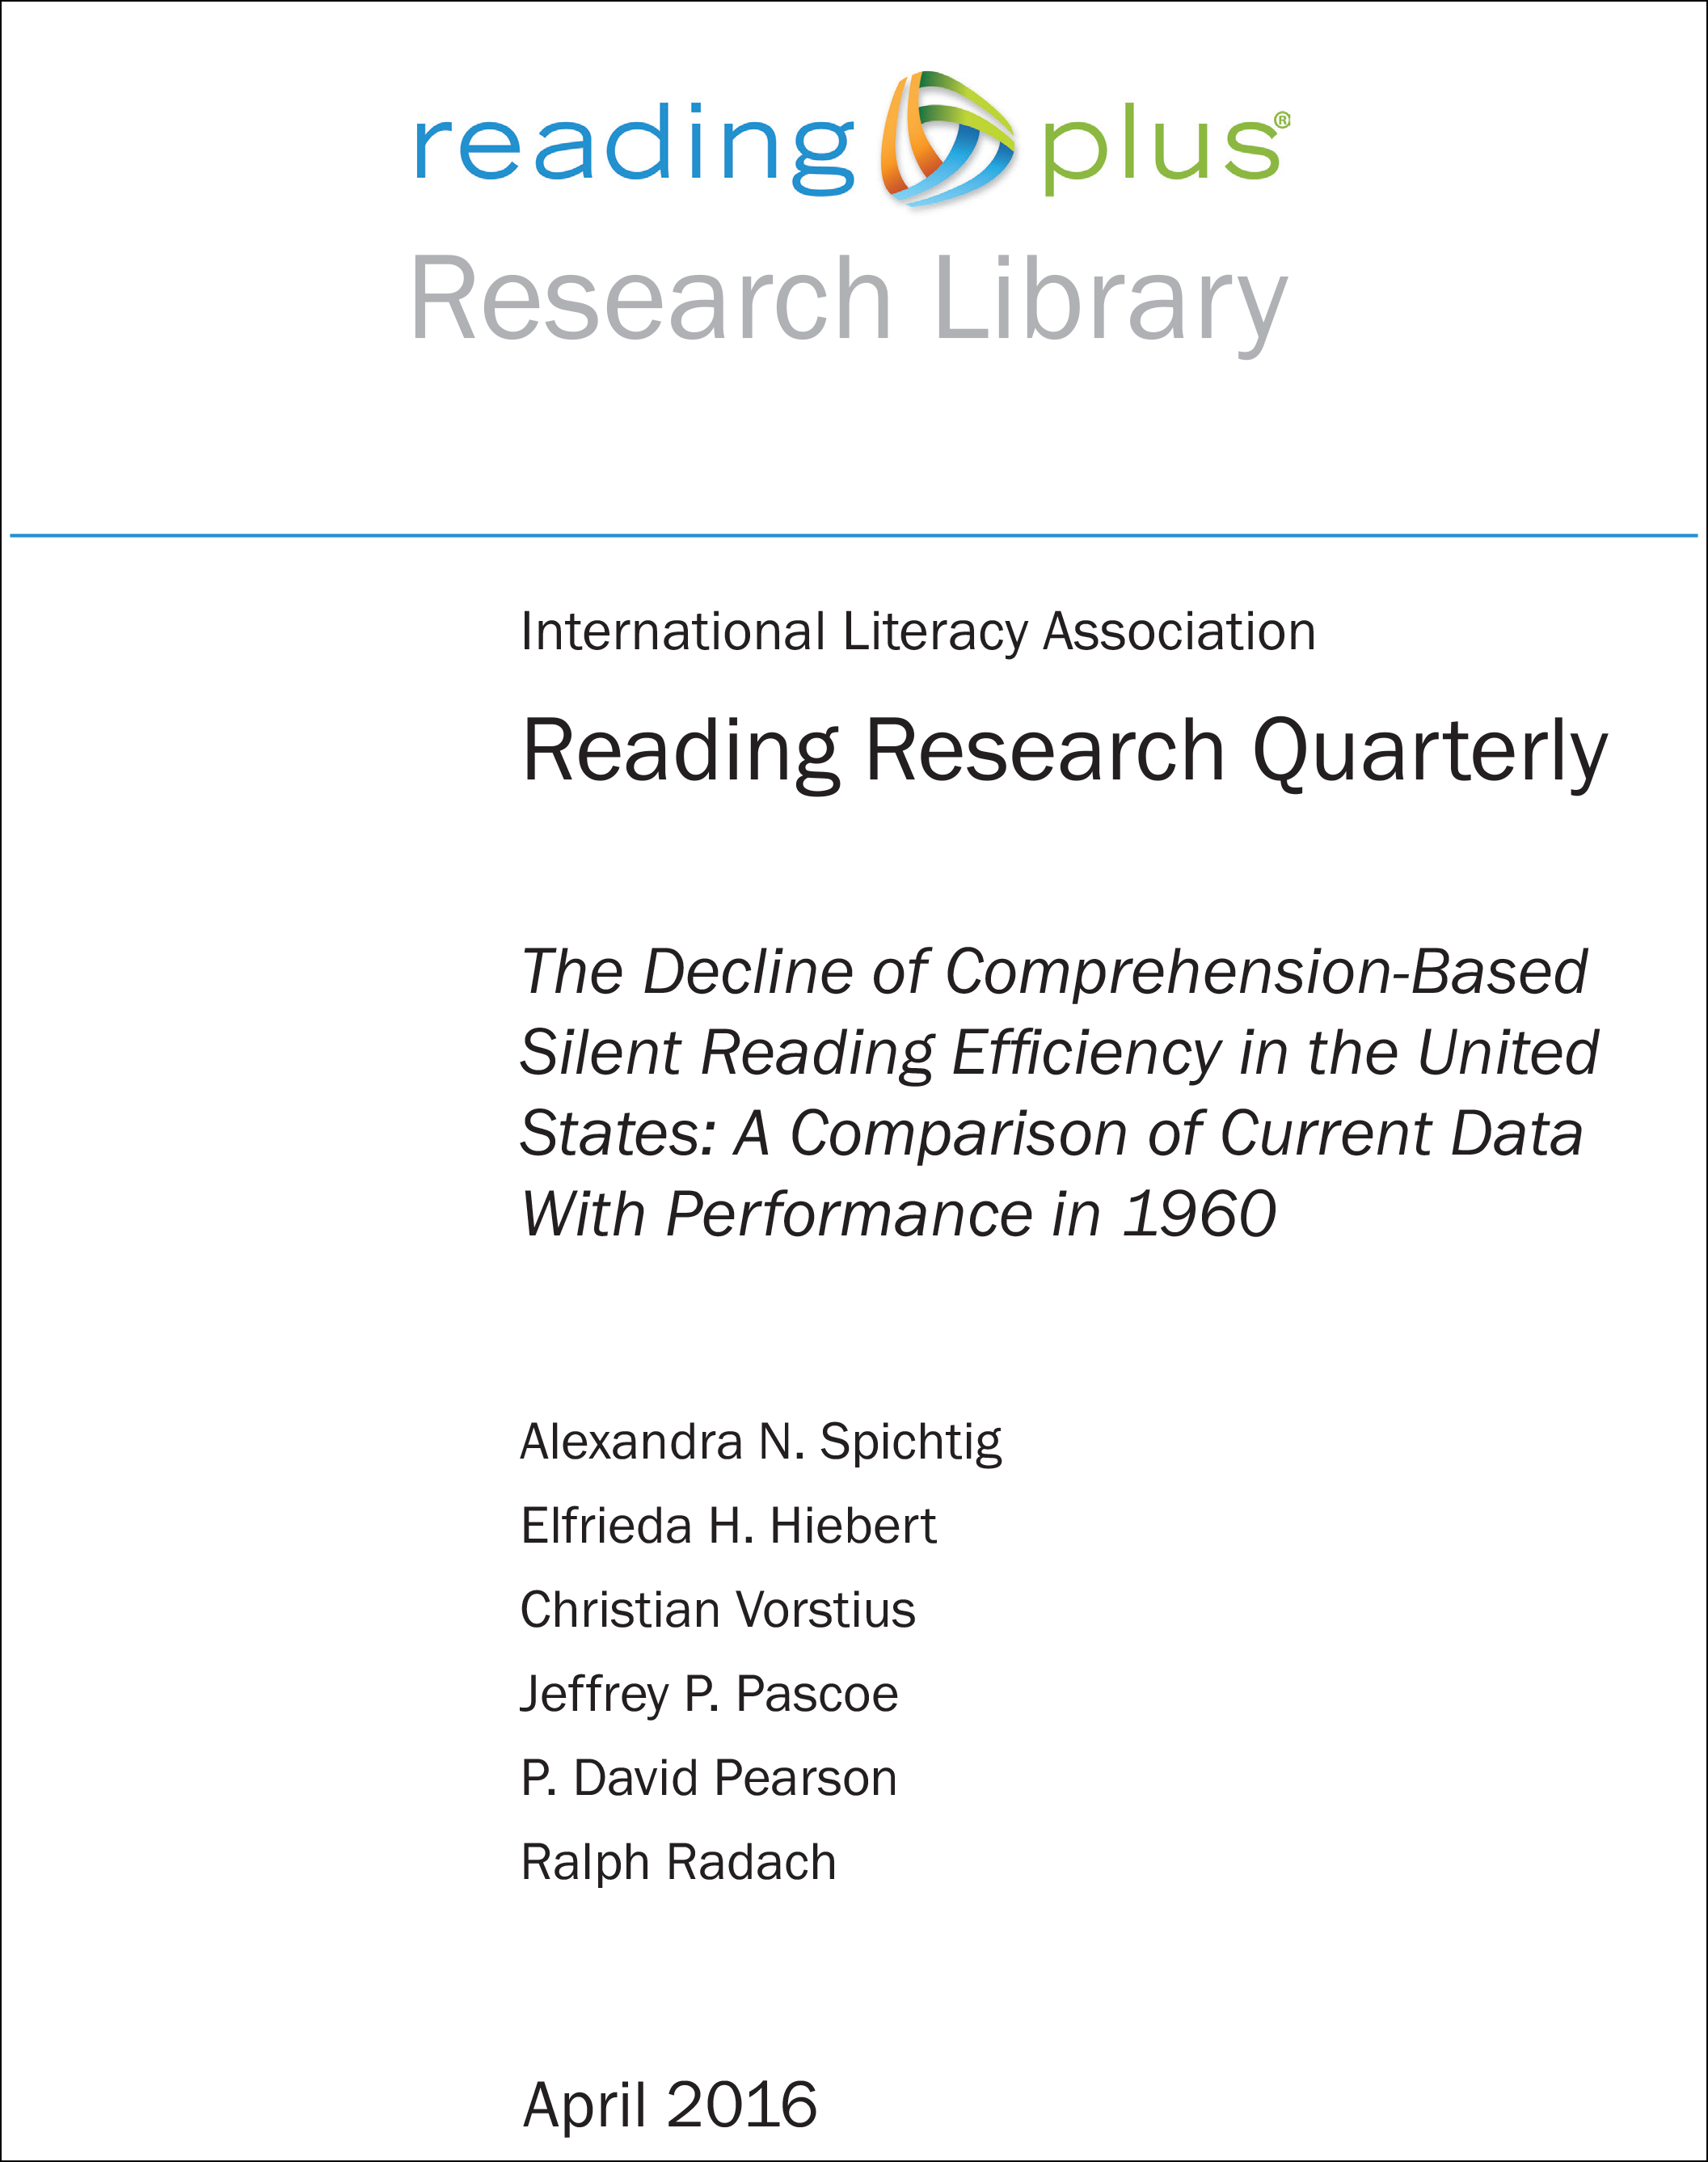 RRQ-Study-Cover-Reading-Plus.png